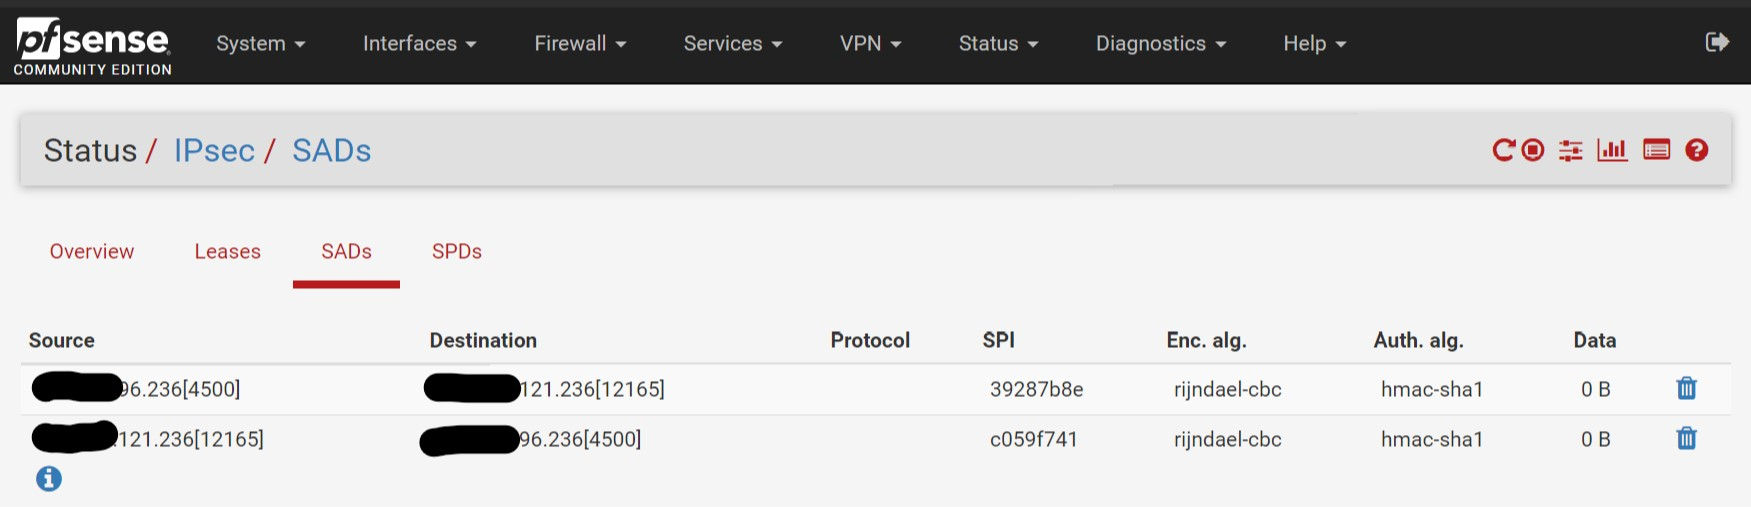 Need Help With Home Router IPsec Setup | Netgate Forum